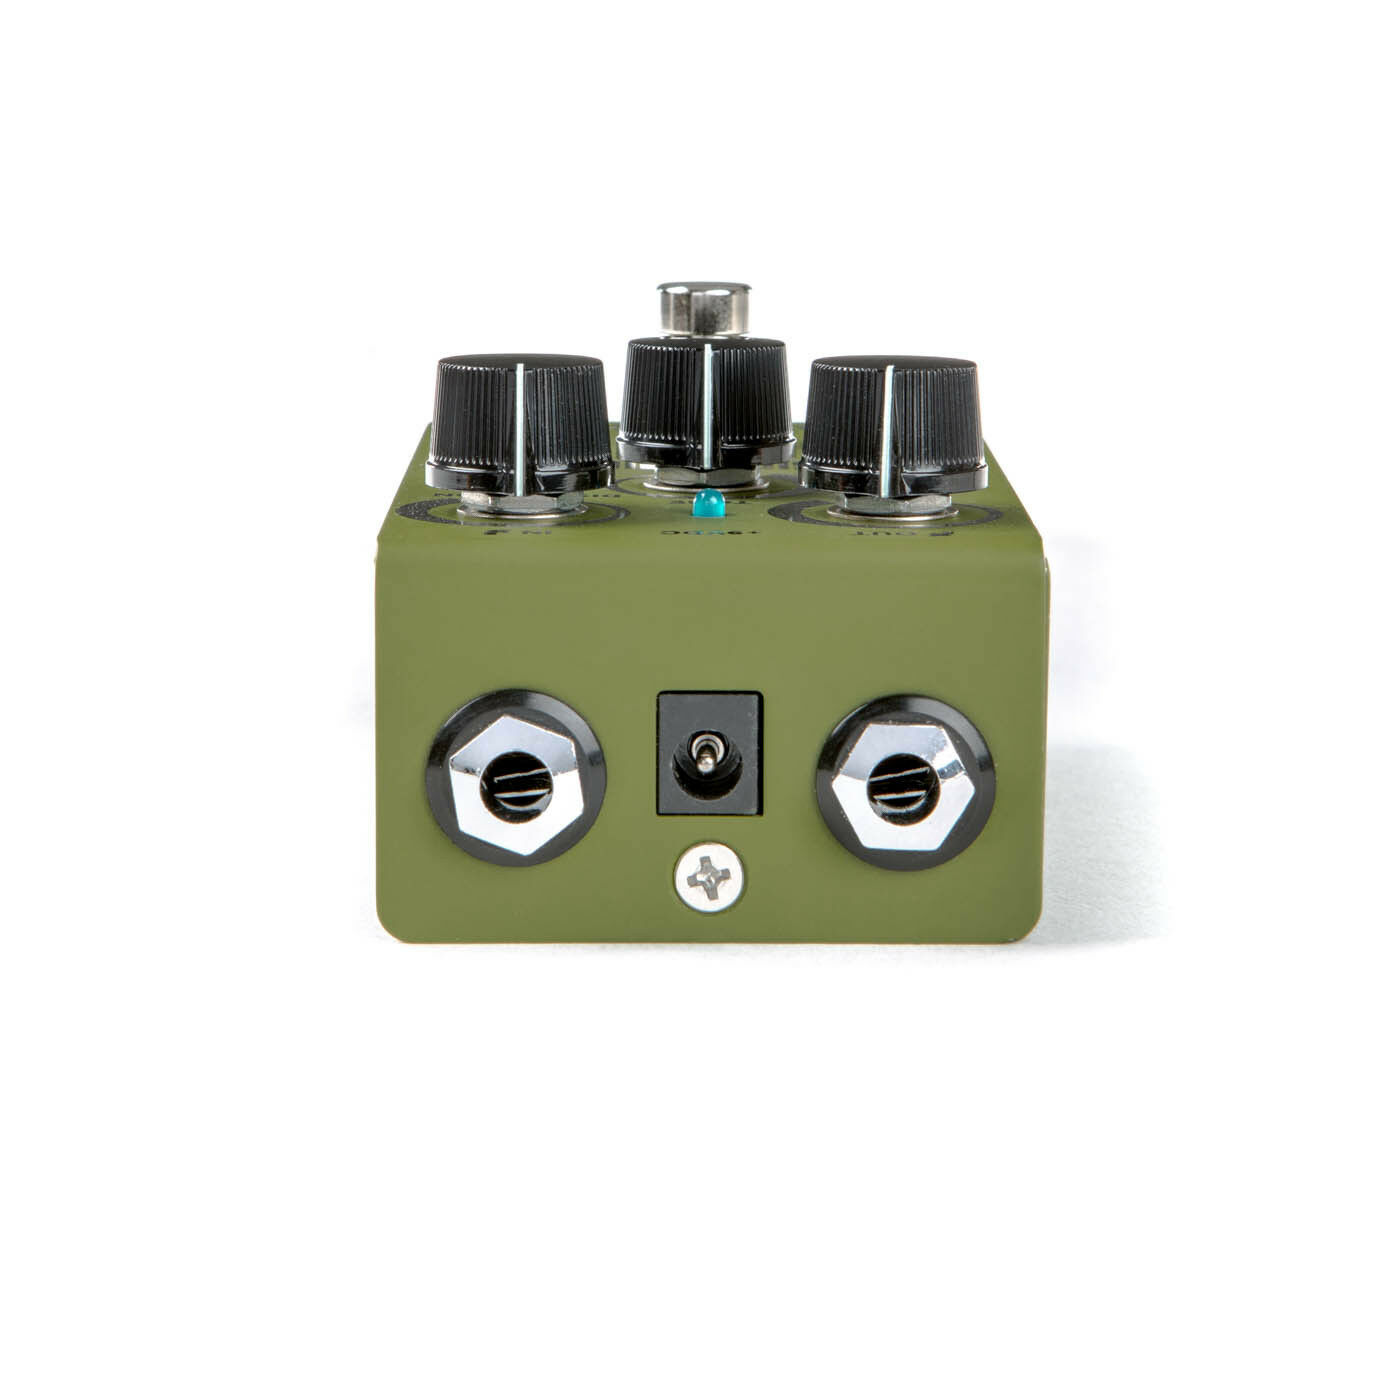 Way Huge Smalls ruso-Pickle Fuzz Fuzz Fuzz Fuzz MK3 Guitarra Pedal JD-WM42 8dc0e6